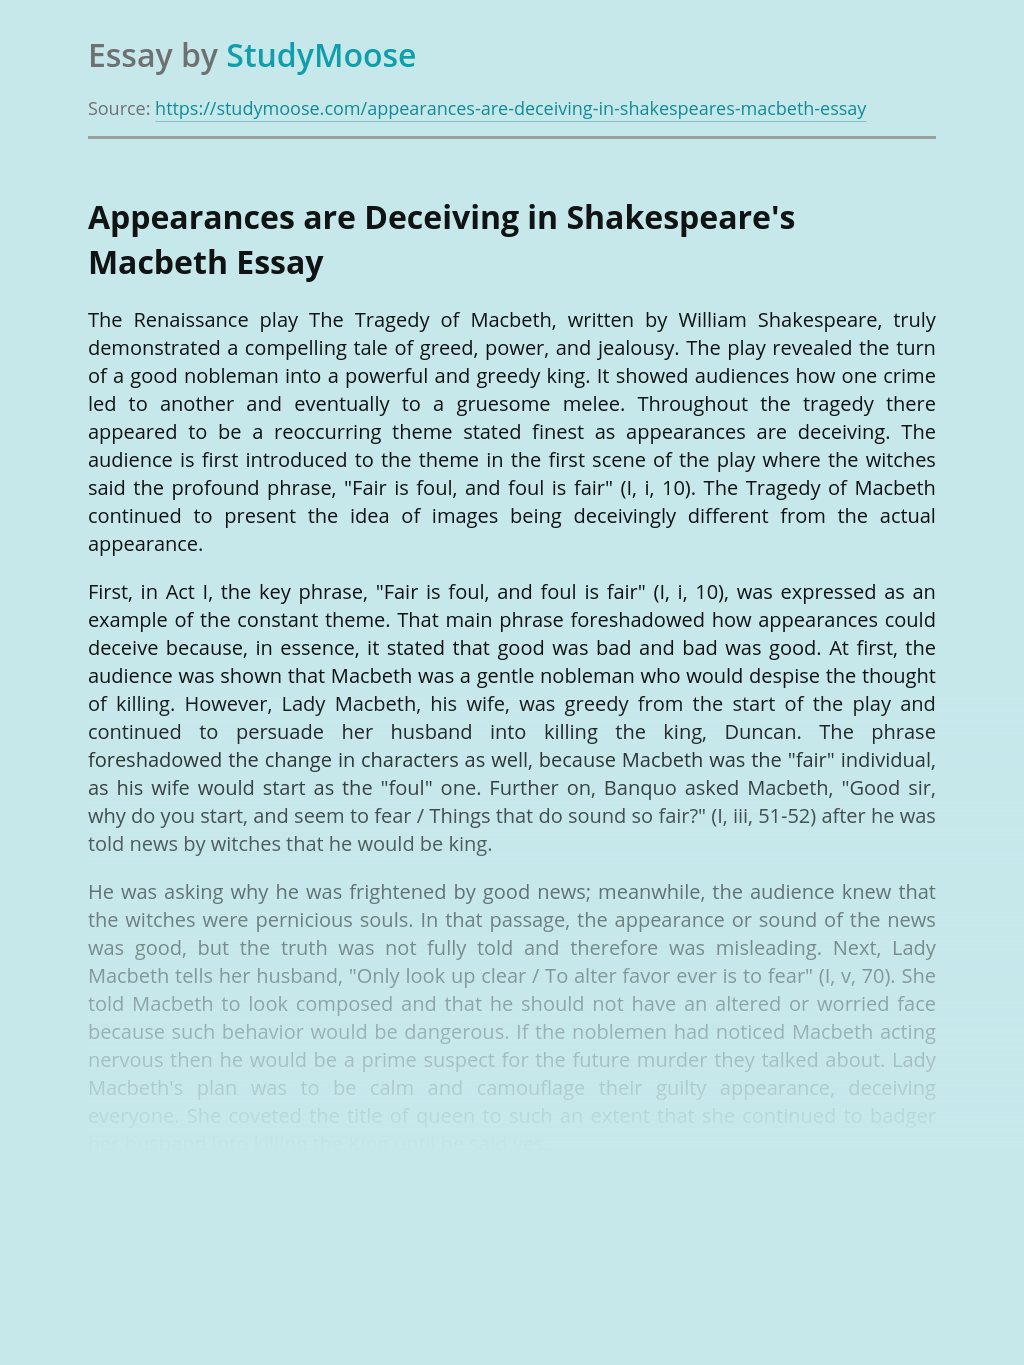 Appearances are Deceiving in Shakespeare's Macbeth